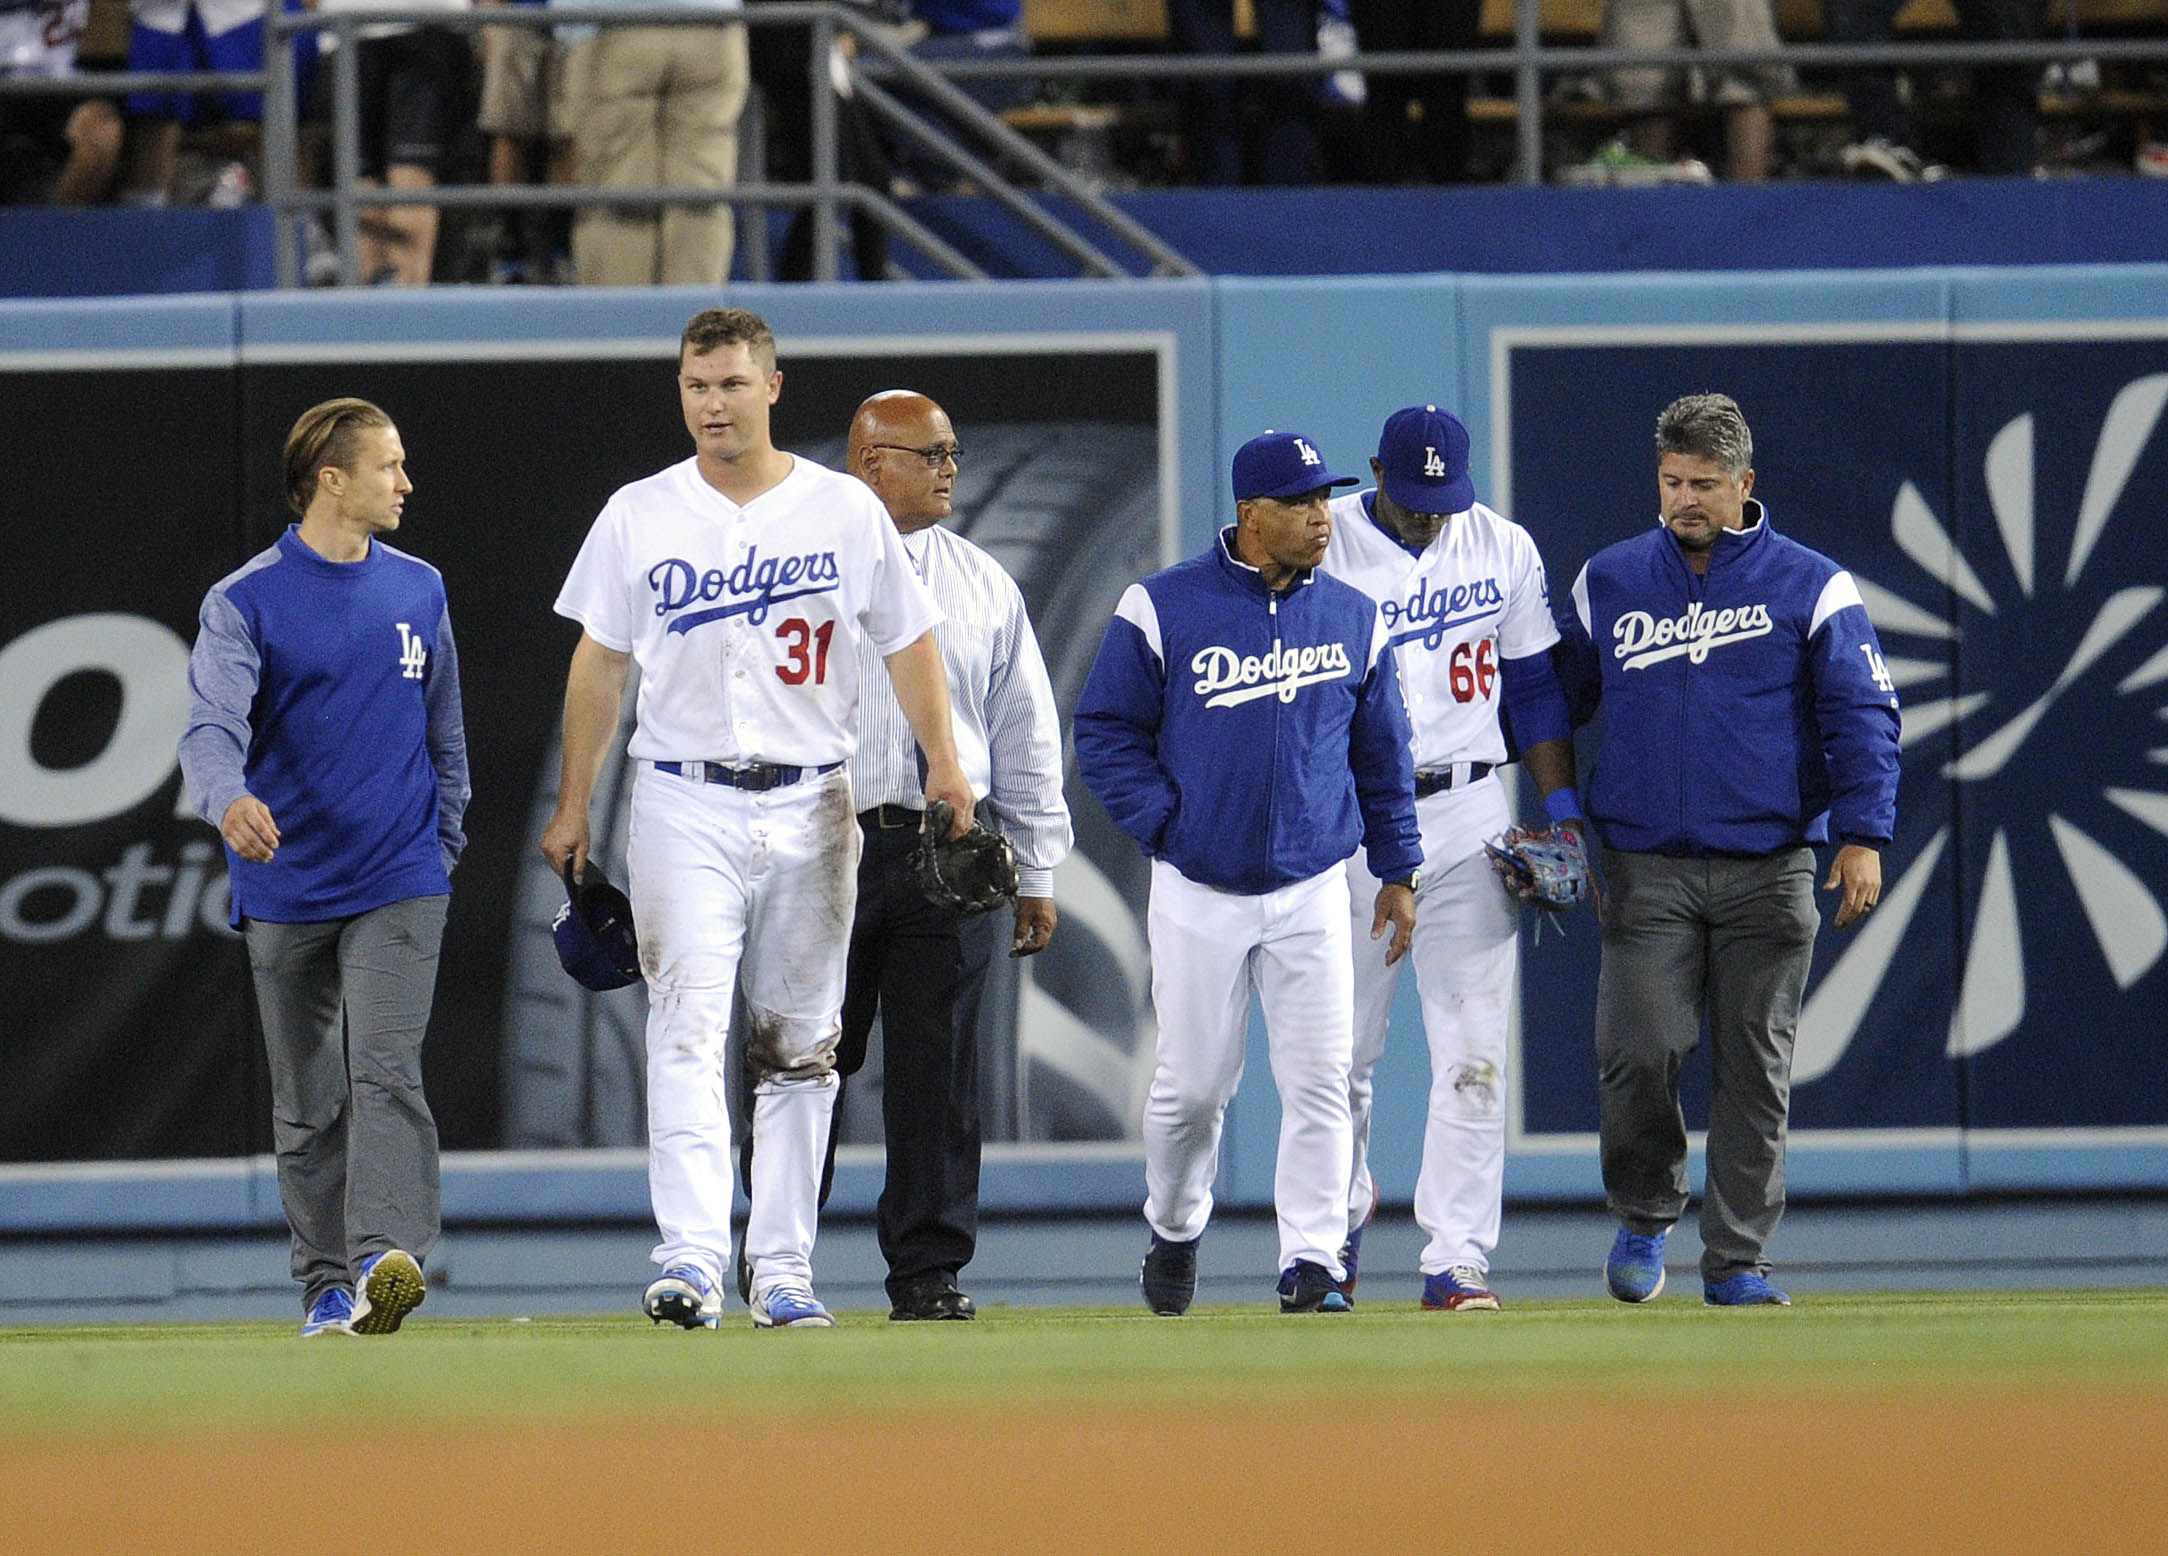 10071866-mlb-st.-louis-cardinals-at-los-angeles-dodgers